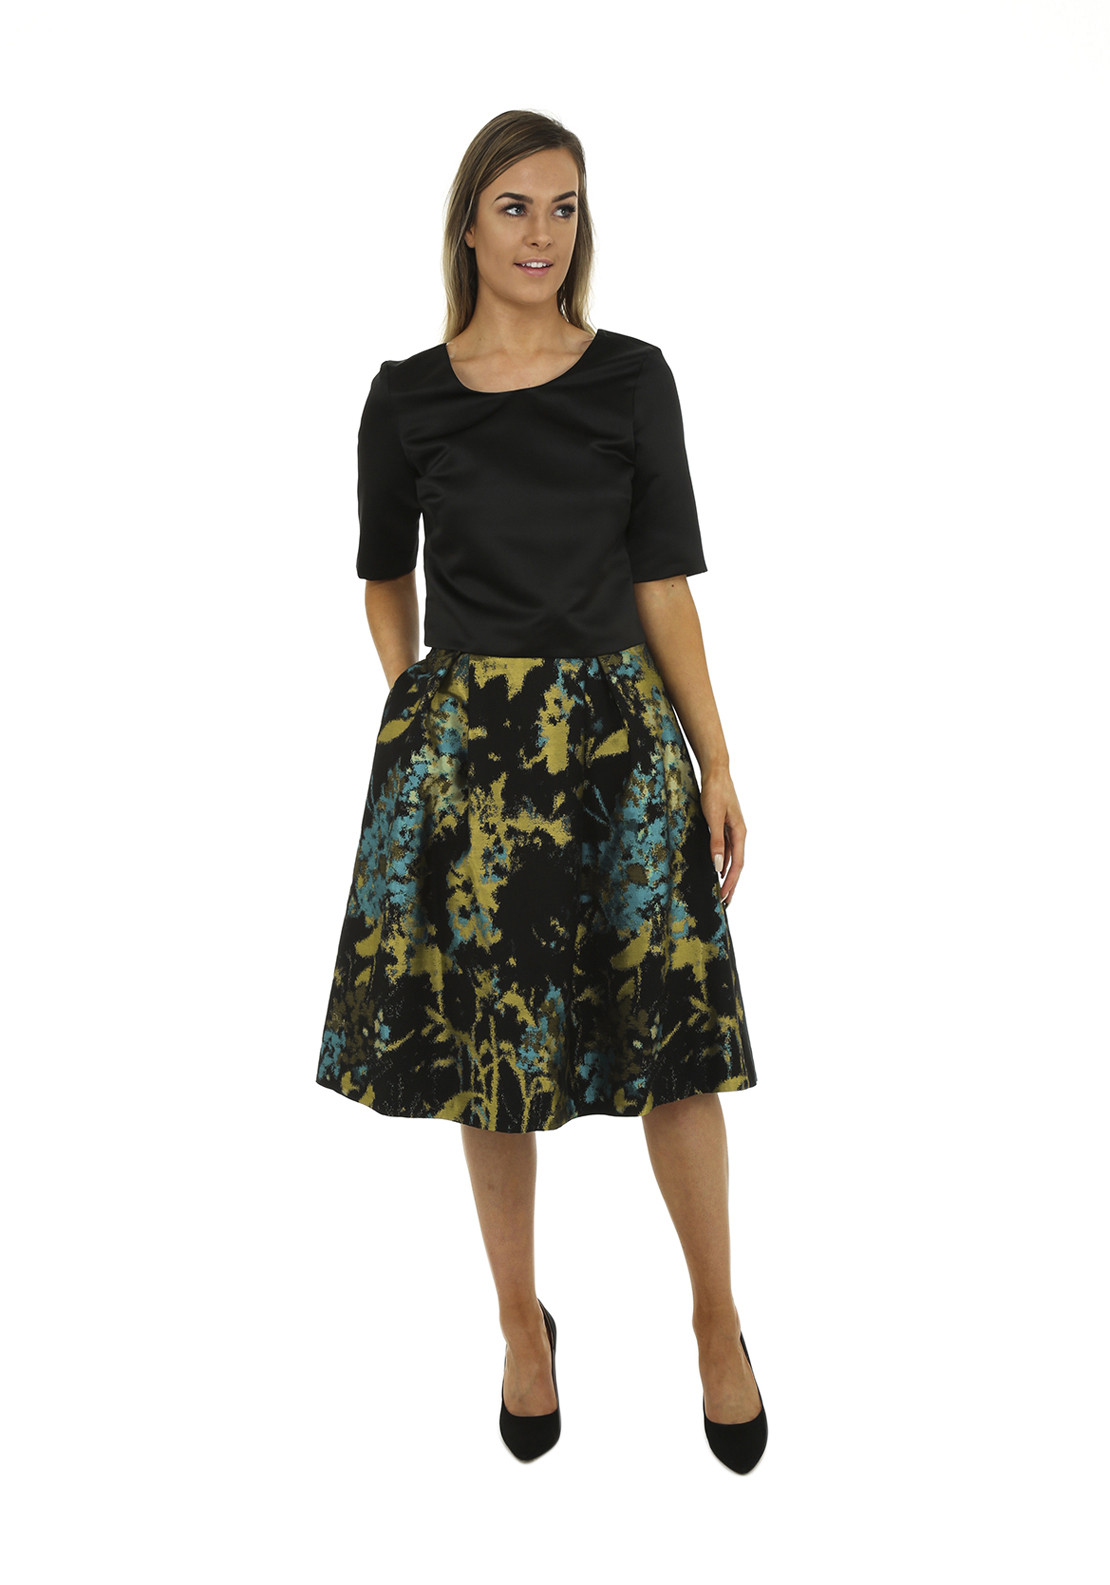 Kate Cooper Printed Flared Skirt, Green Multi